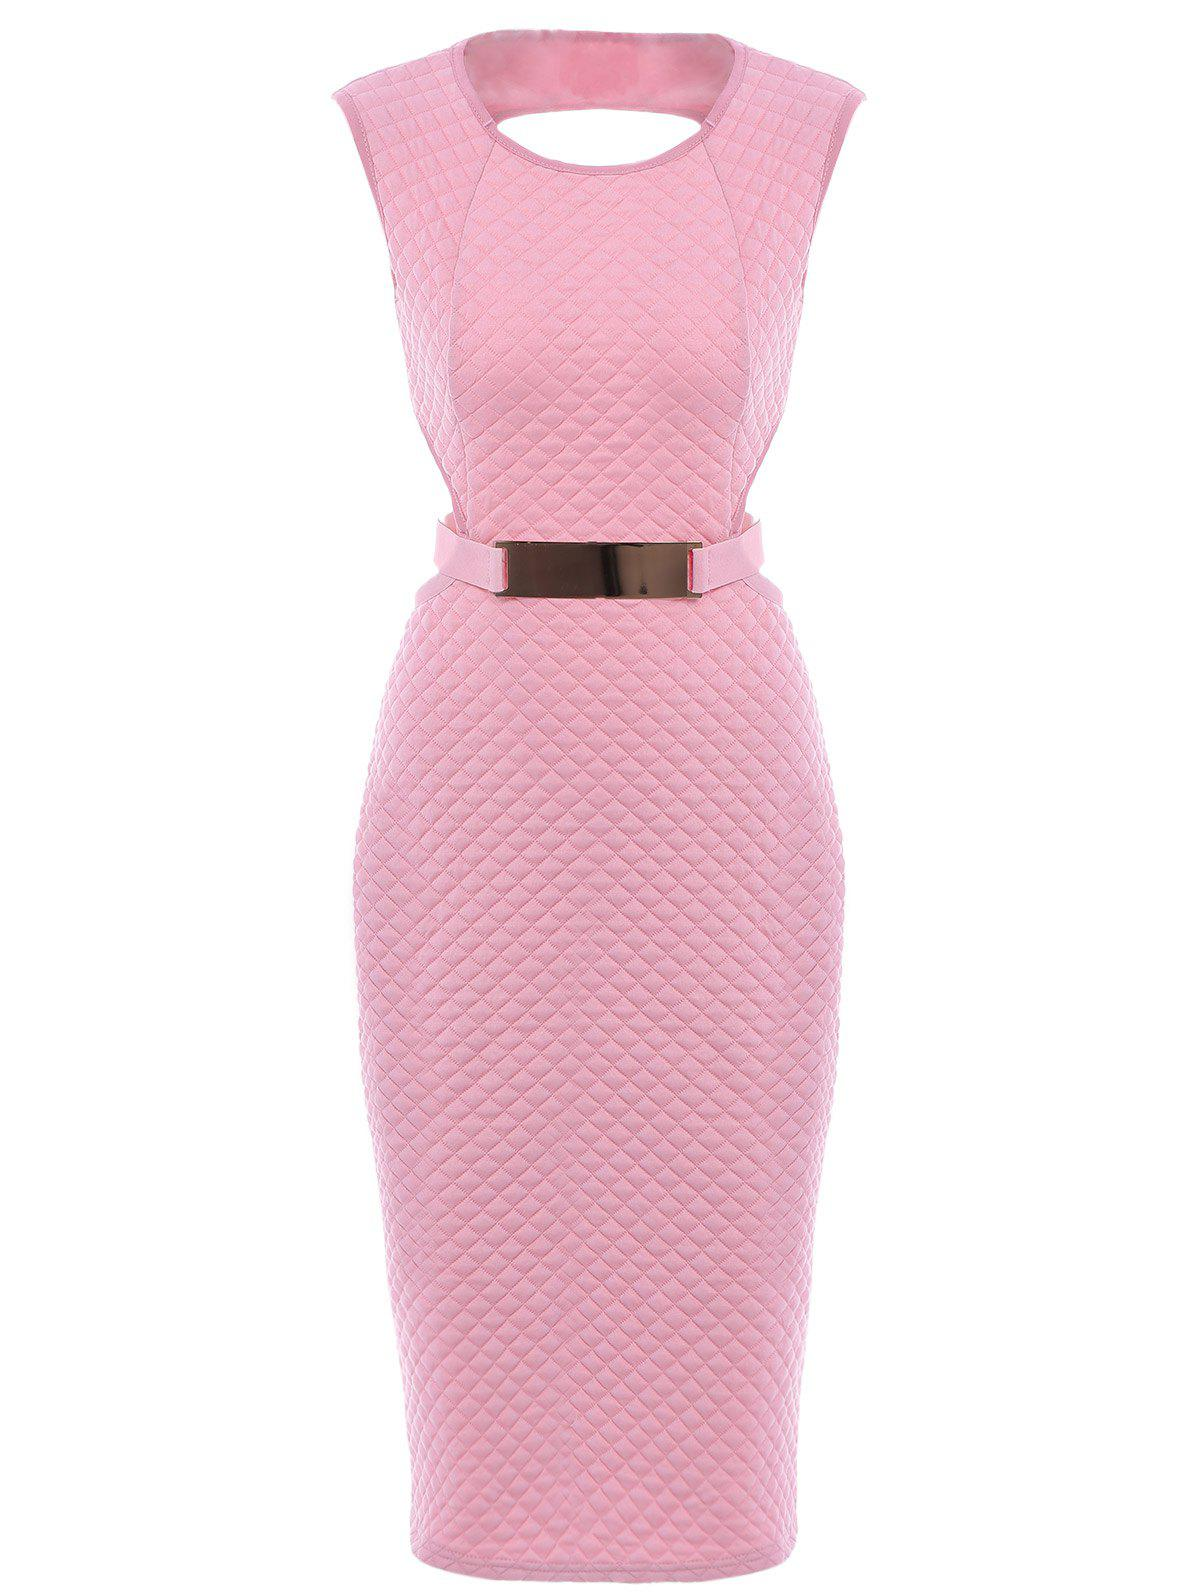 Sexy Sleeveless Round Collar Pure Color Slimming Cut Out Women's Dress